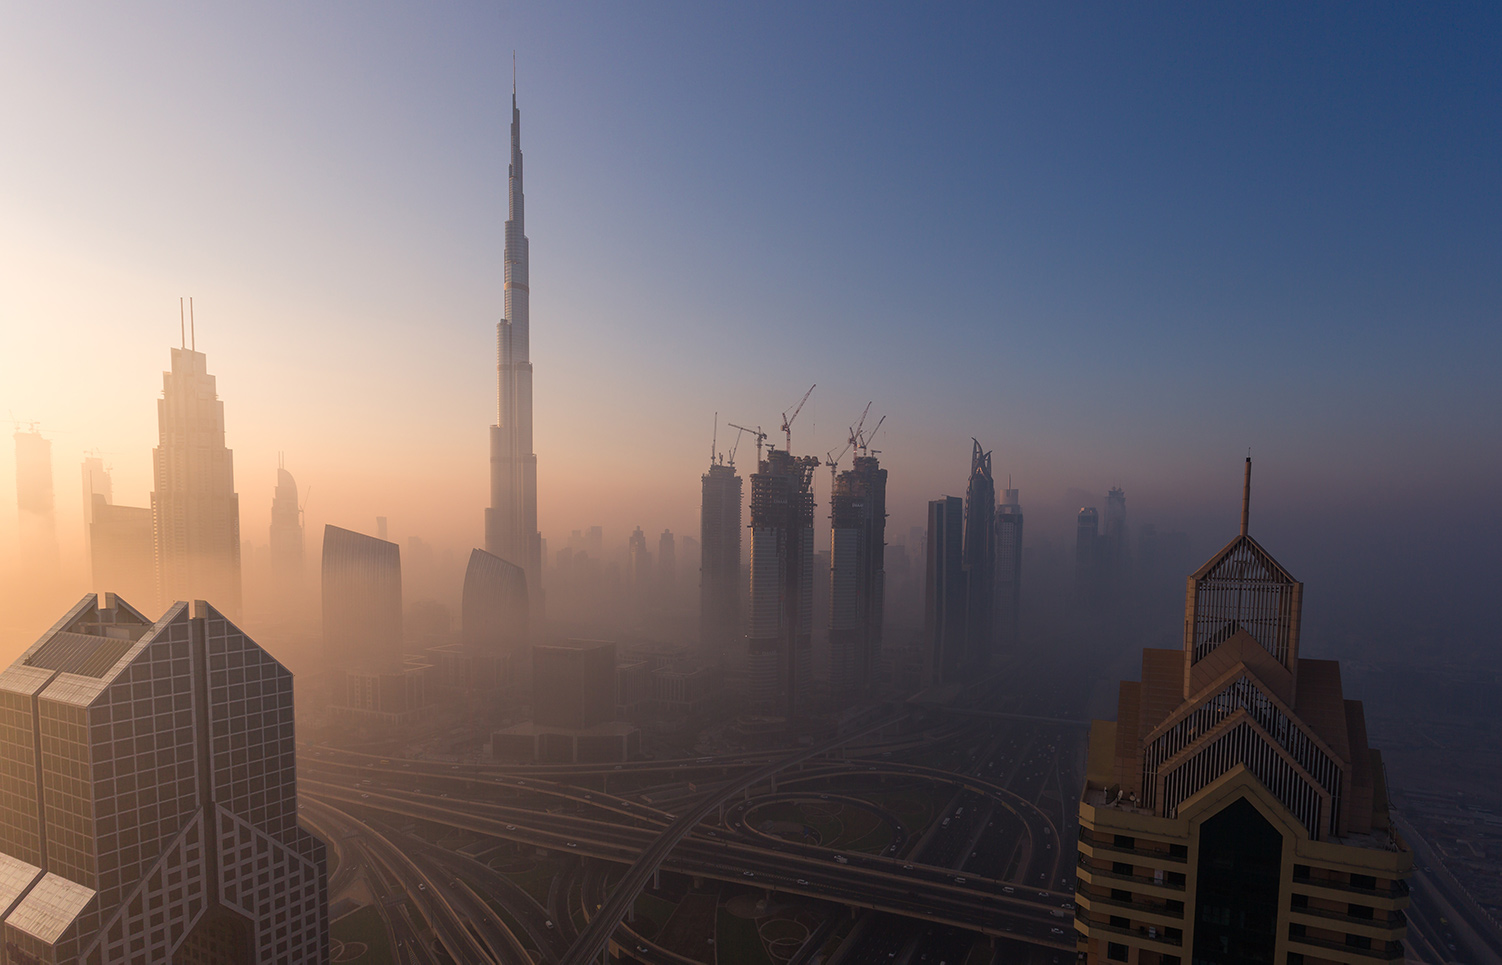 Downtown Dubai at sunrise on December 07, 2016. Rustam Azmi/Getty Images.